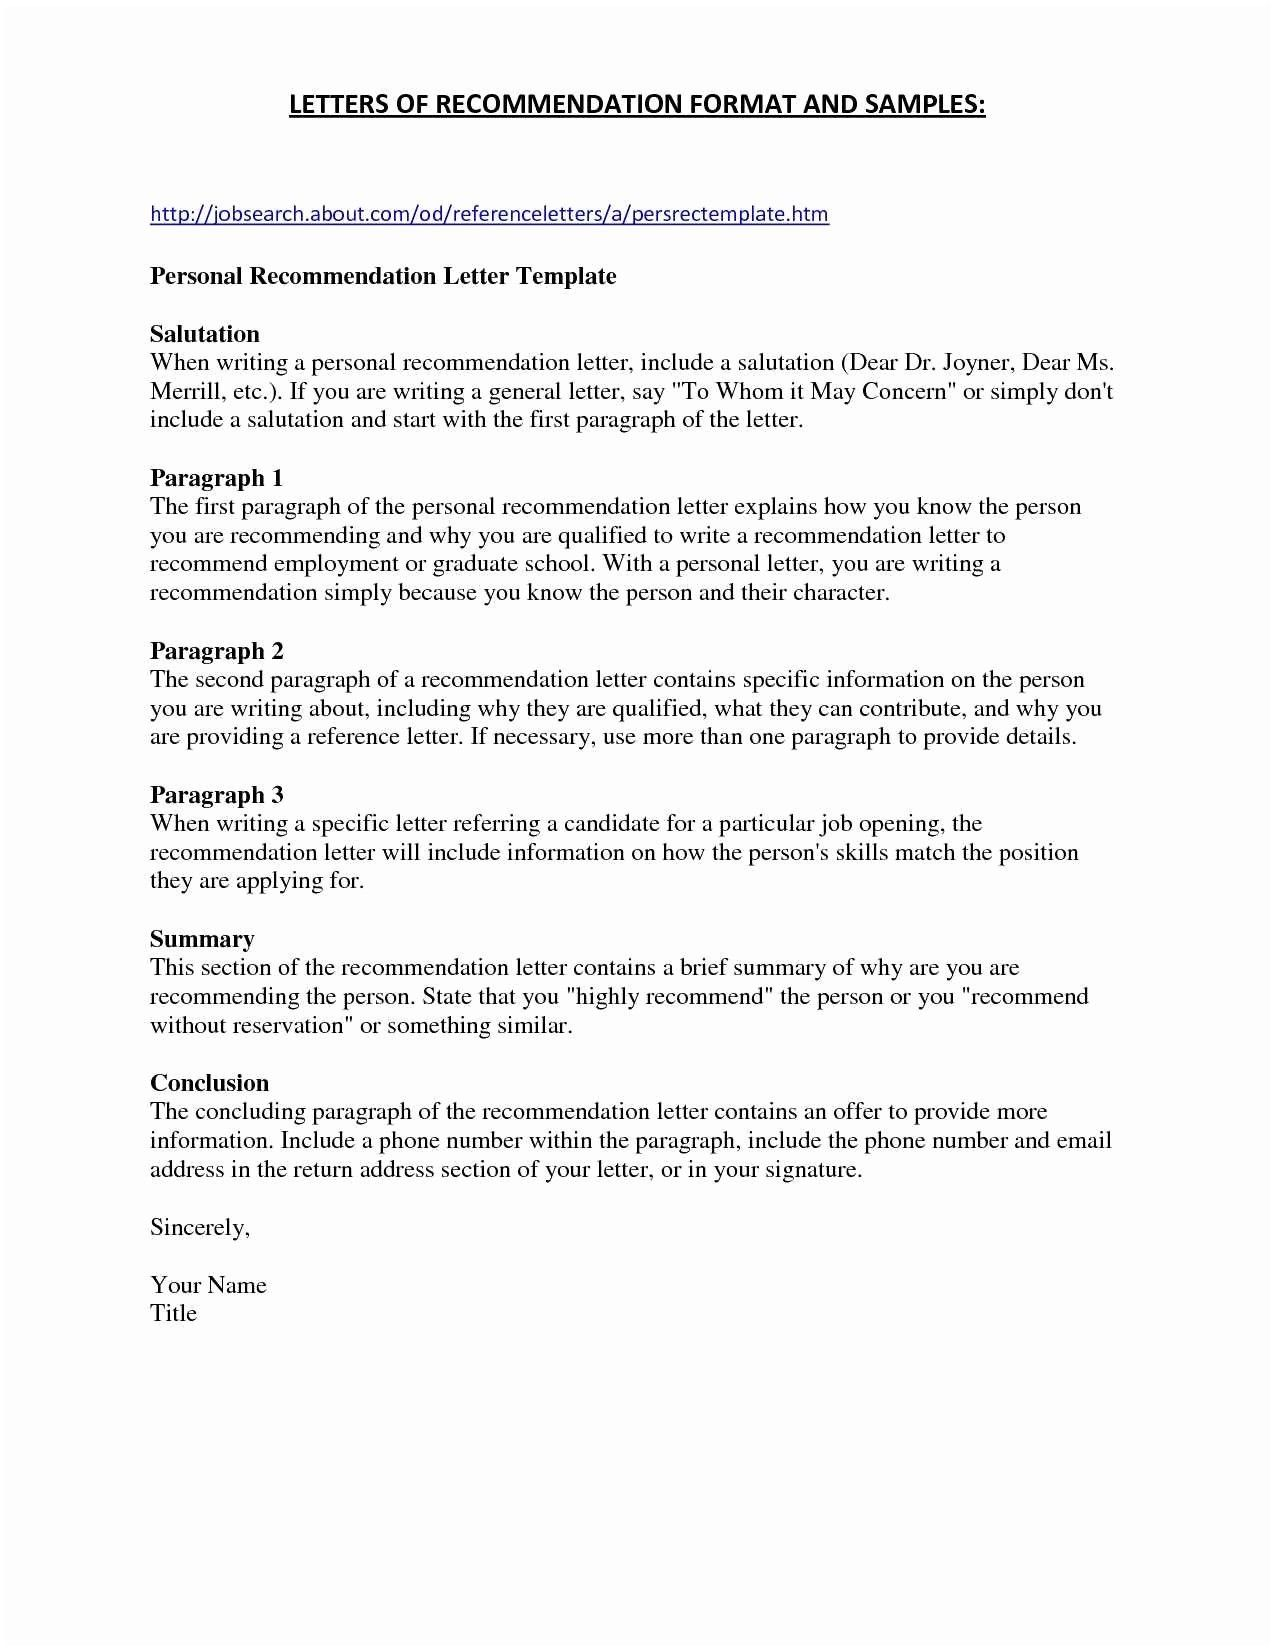 Business Letter Format To Two